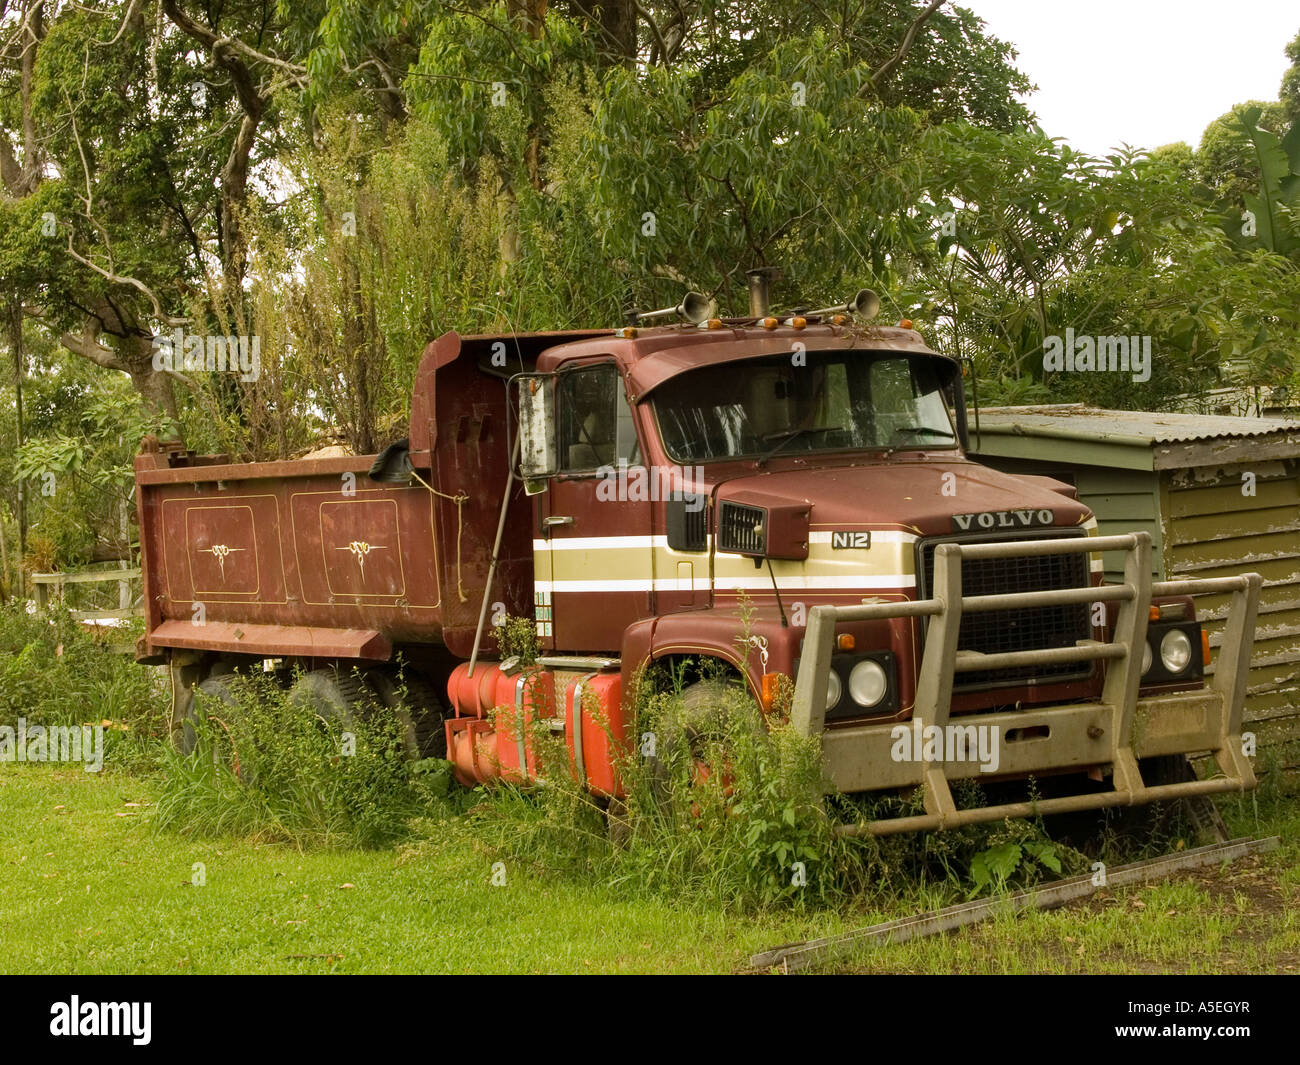 Volvo Of The Woodlands >> Volvo Tip Dump Truck Abandoned In Woodlands Stock Photo